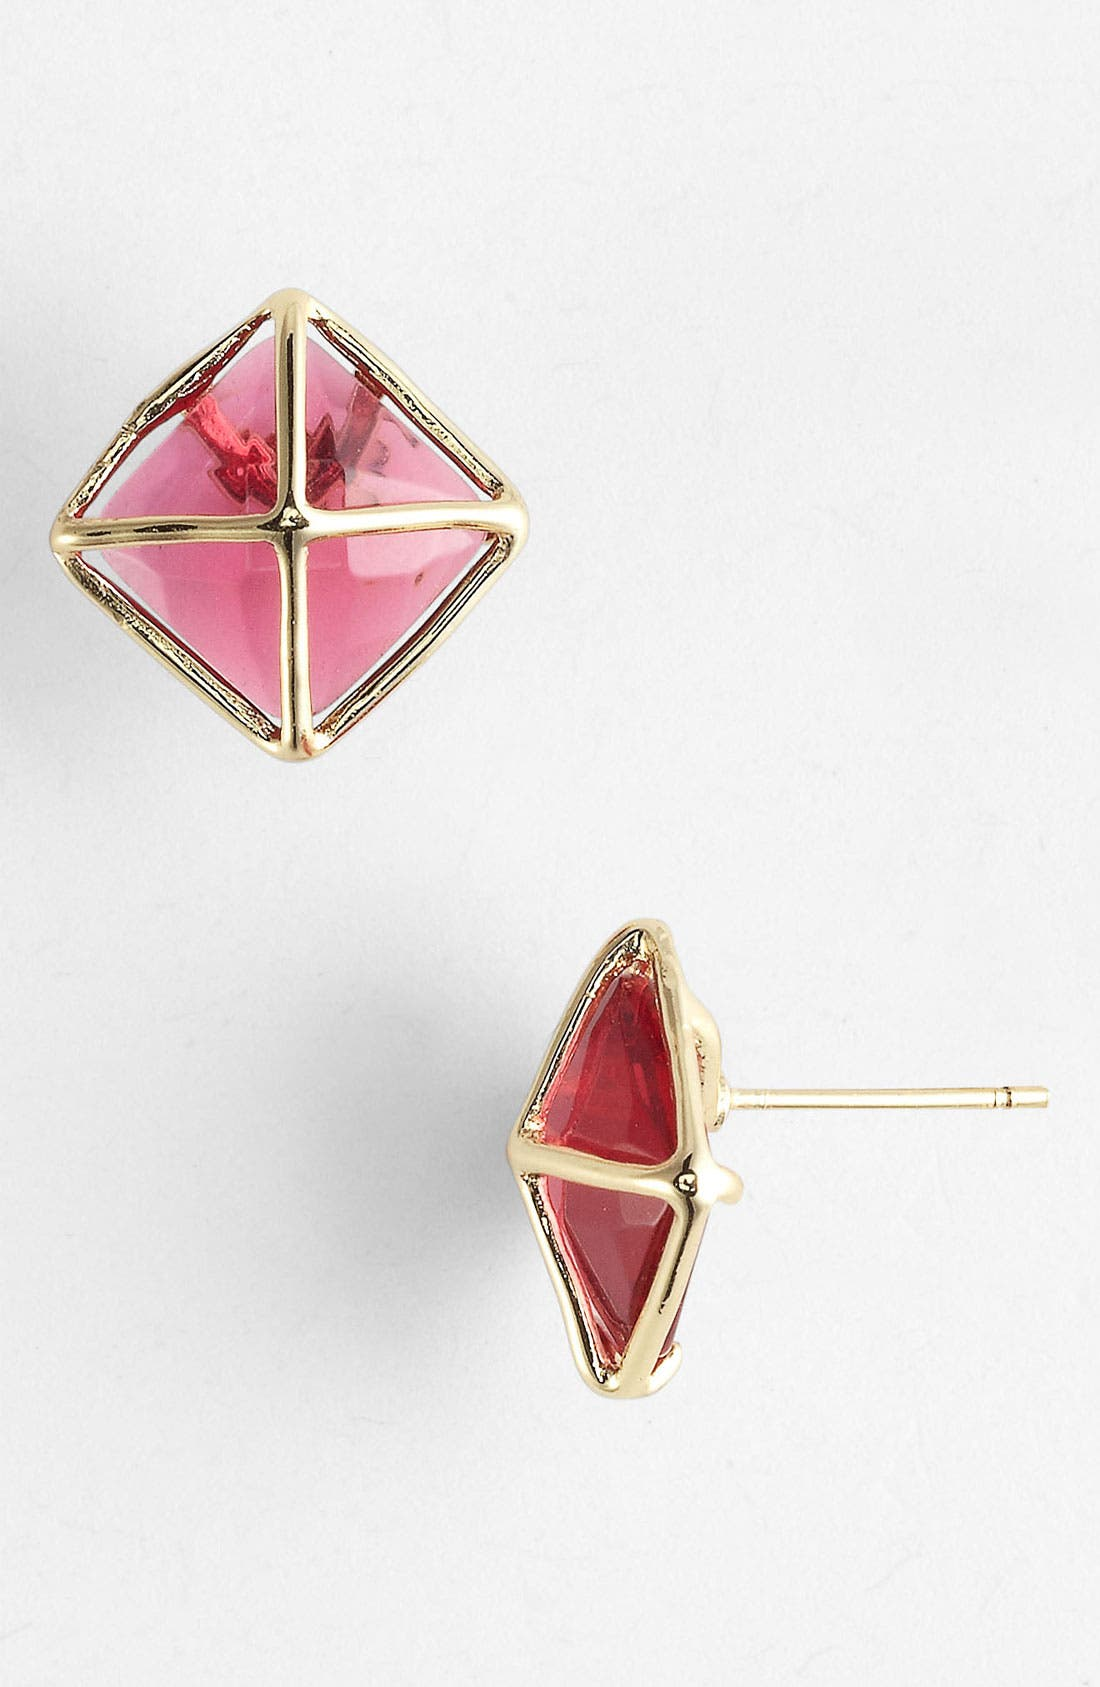 Main Image - Kendra Scott 'Bonnie' Stud Earrings